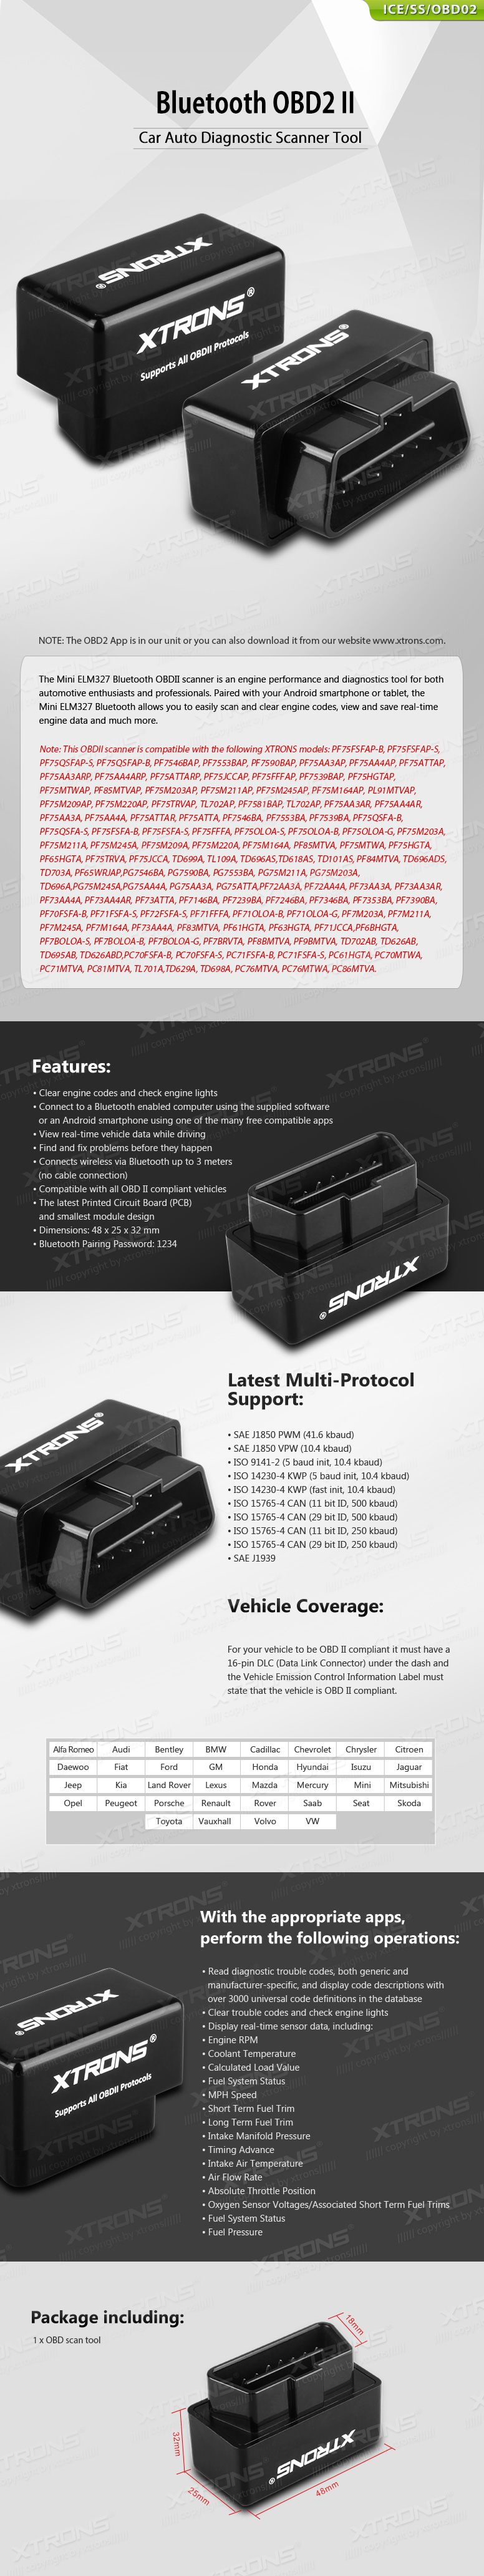 Bluetooth OBD2 II Car Auto Diagnostic Scanner Tool for Xtrons Android Units